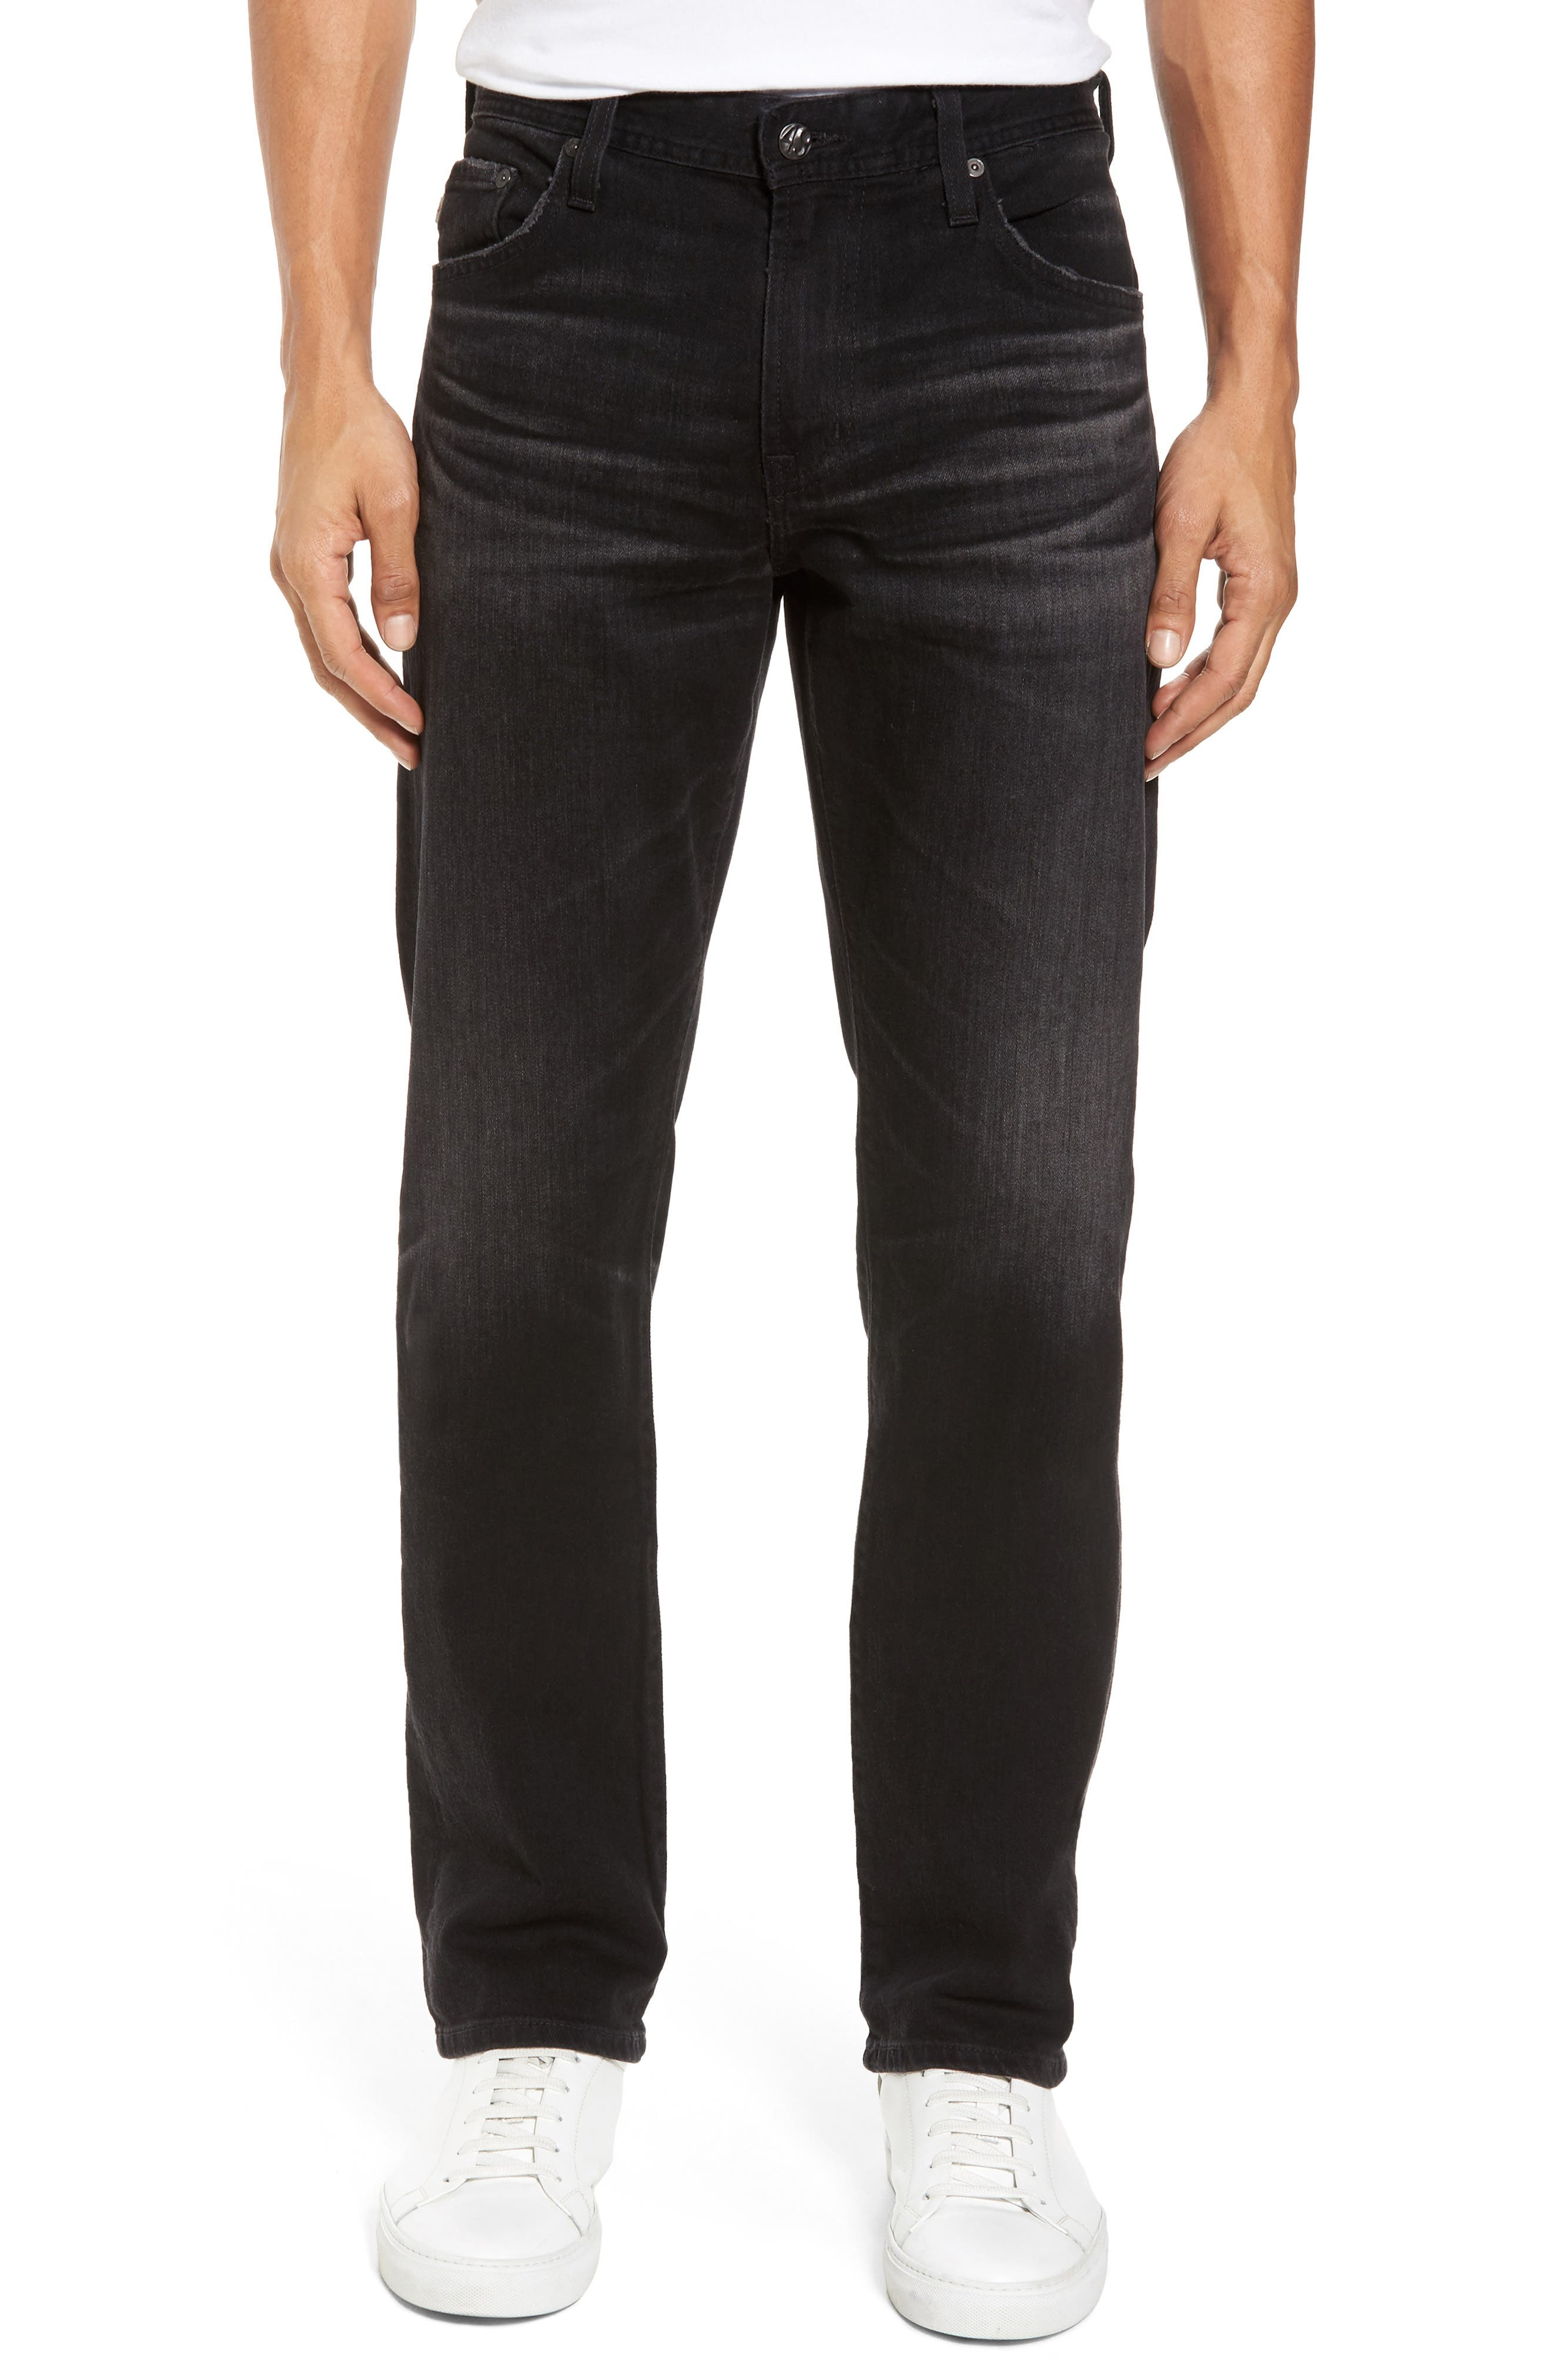 Graduate Slim Straight Fit Jeans,                             Main thumbnail 1, color,                             4 Years Down